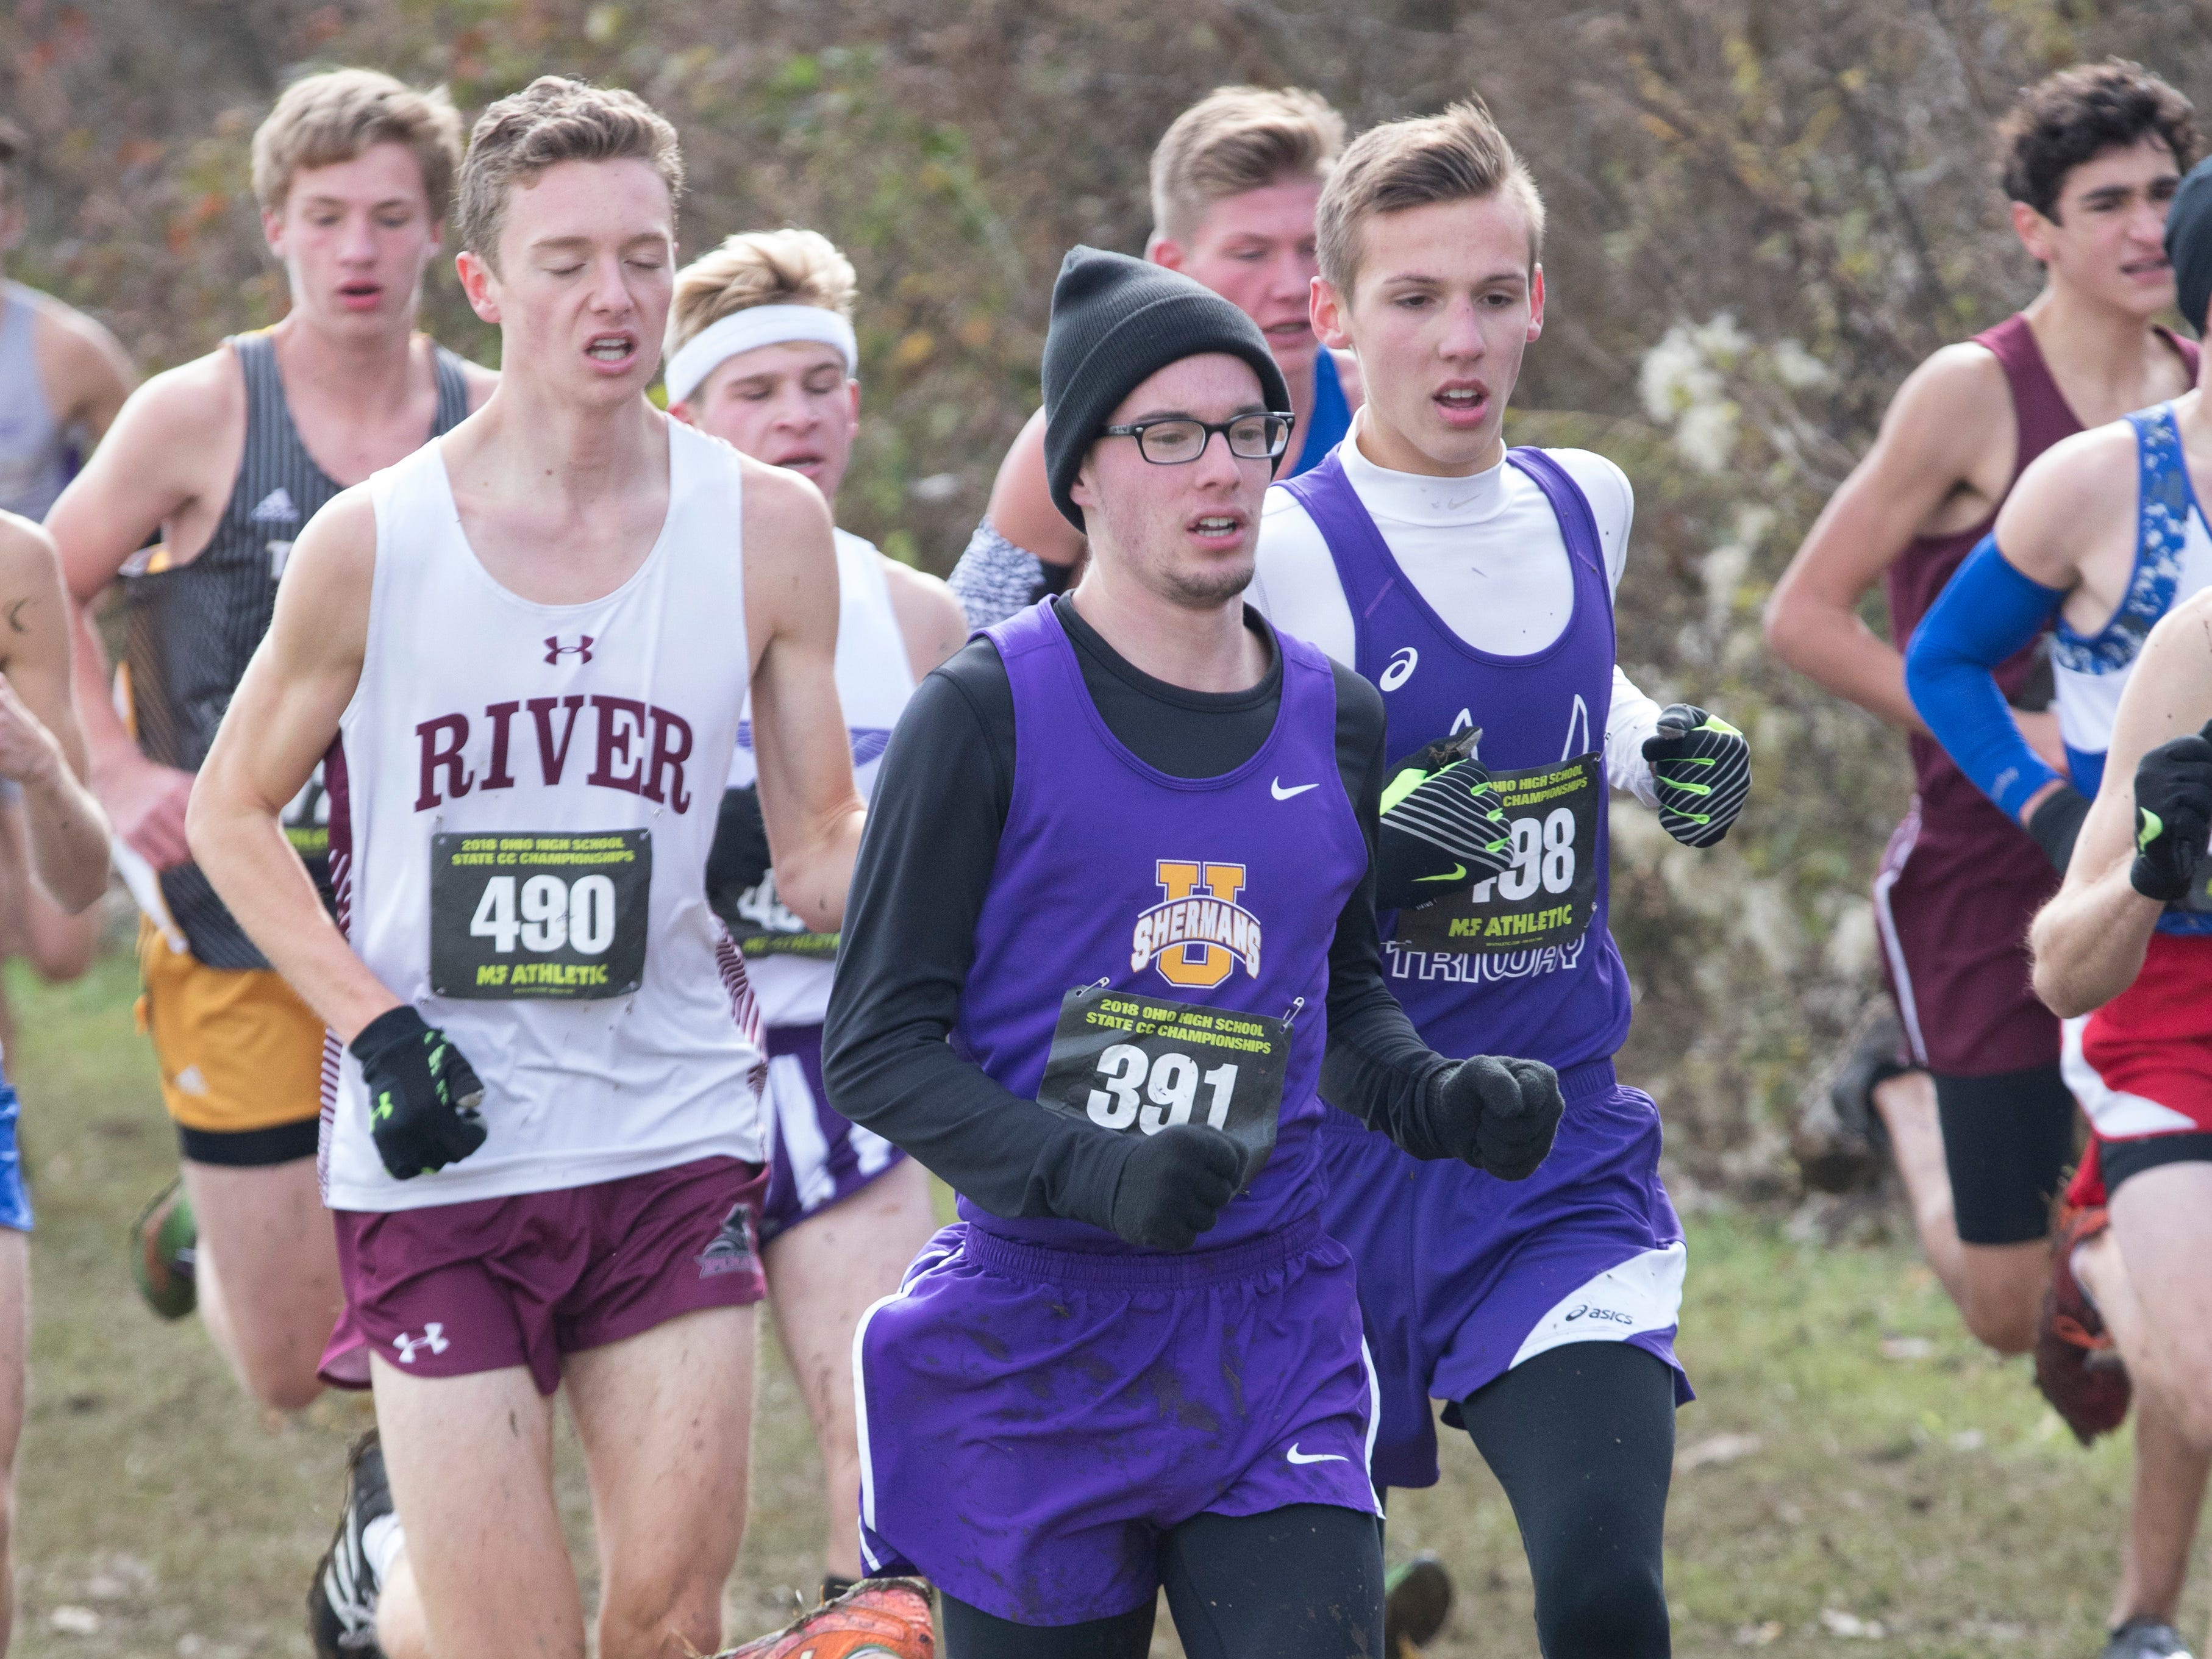 Unioto junior Eric Hacker (#391) competed in the 2018 OHSAA State Cross Country meet in Hebron, Ohio, on November 3, 2018. Hacker finished the race 56th out of 178 runners with a time of 17:32.7 seconds.